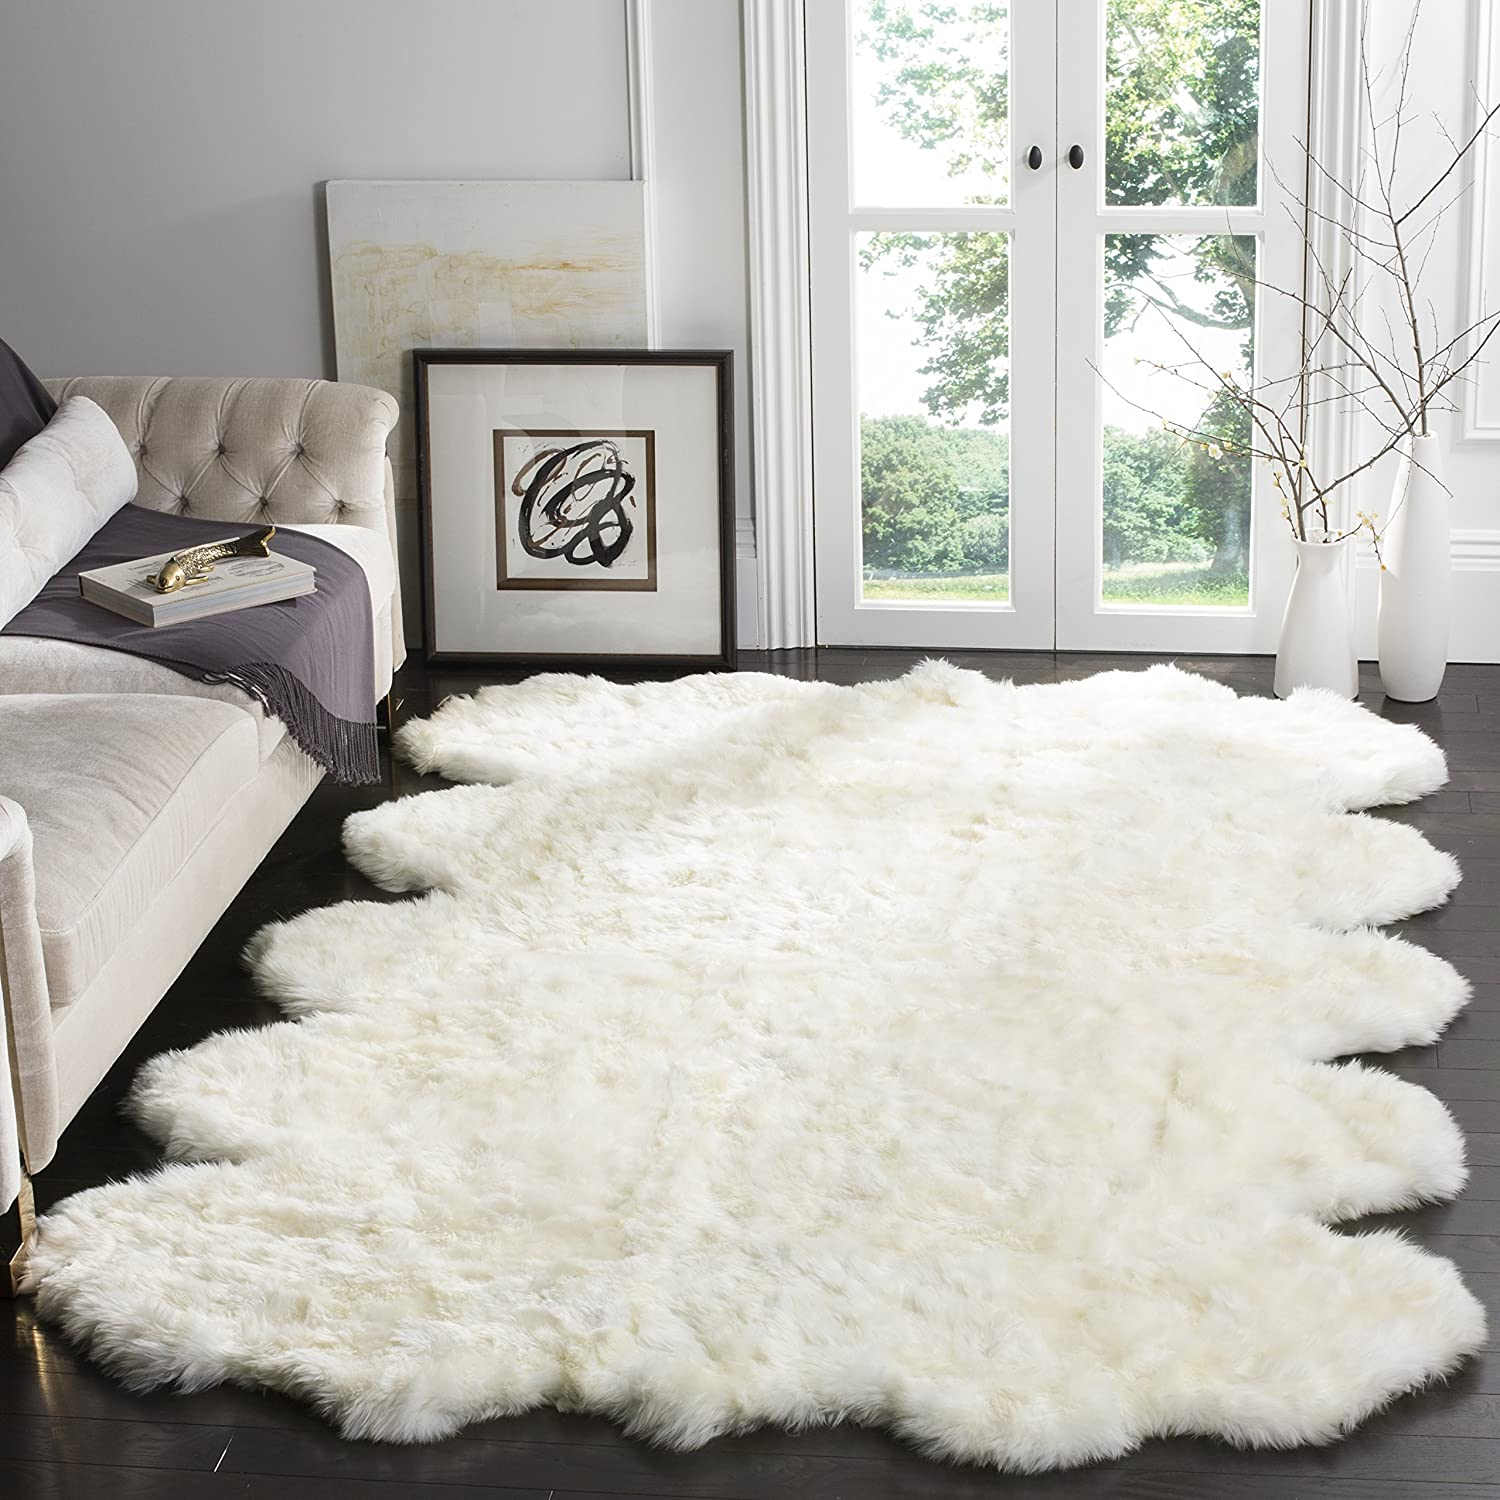 Amazon Com Safavieh Sheep Skin Collection Shs211a Handmade Rustic Glam Genuine Pelt 3 4 Inch Extra Thick Area Rug 8 X 10 Natural White Furniture Decor